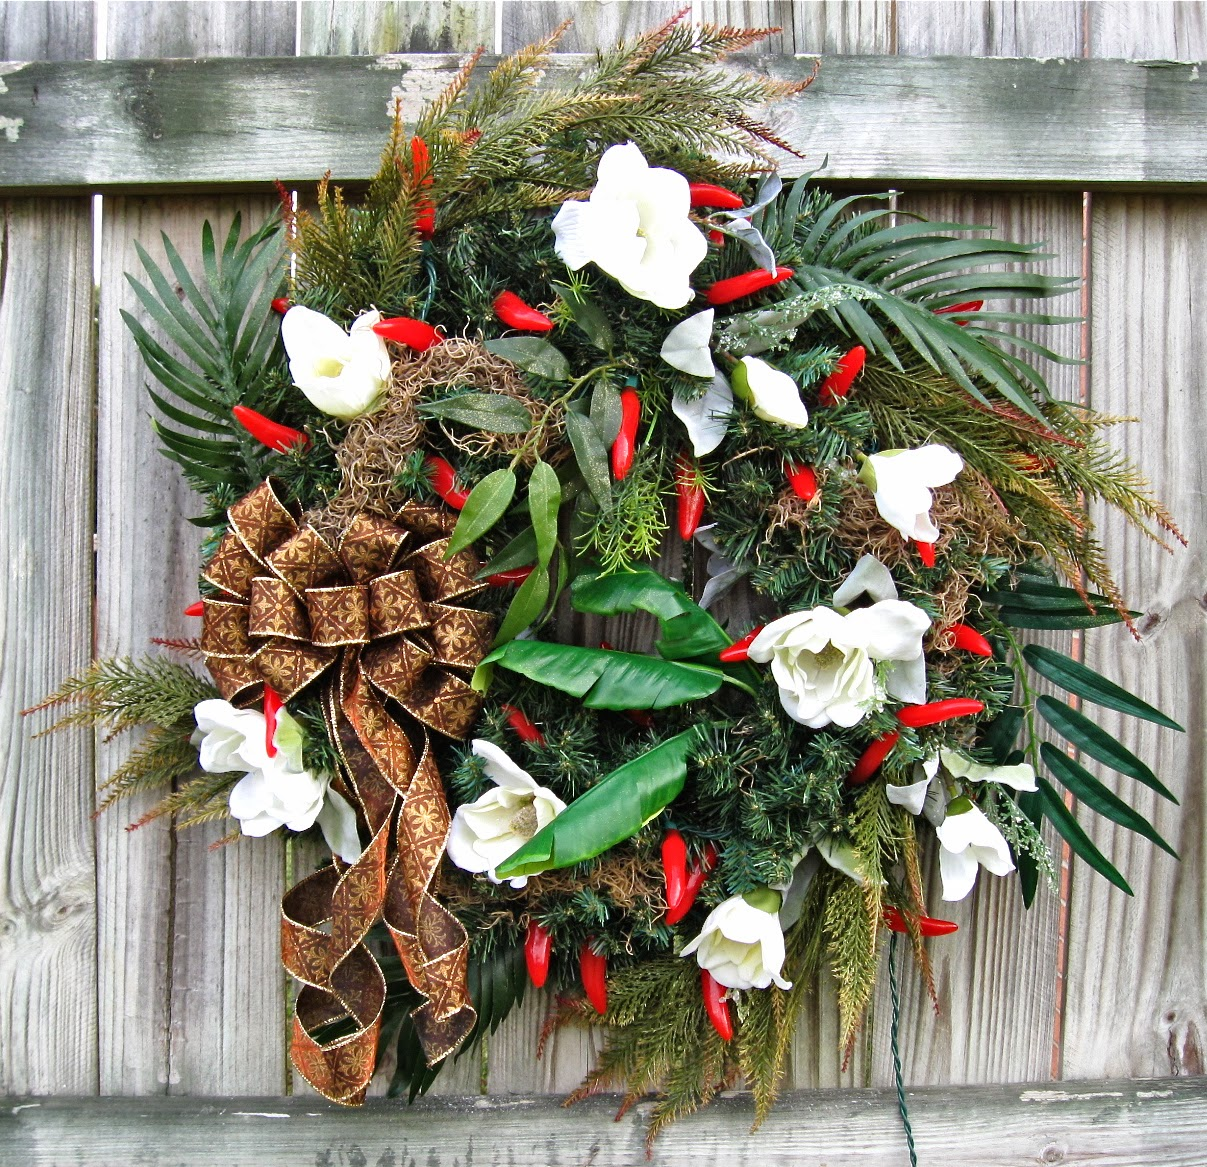 louisiana new orleans cajun christmas pre lit wreath red chili pepper string lights magnolias